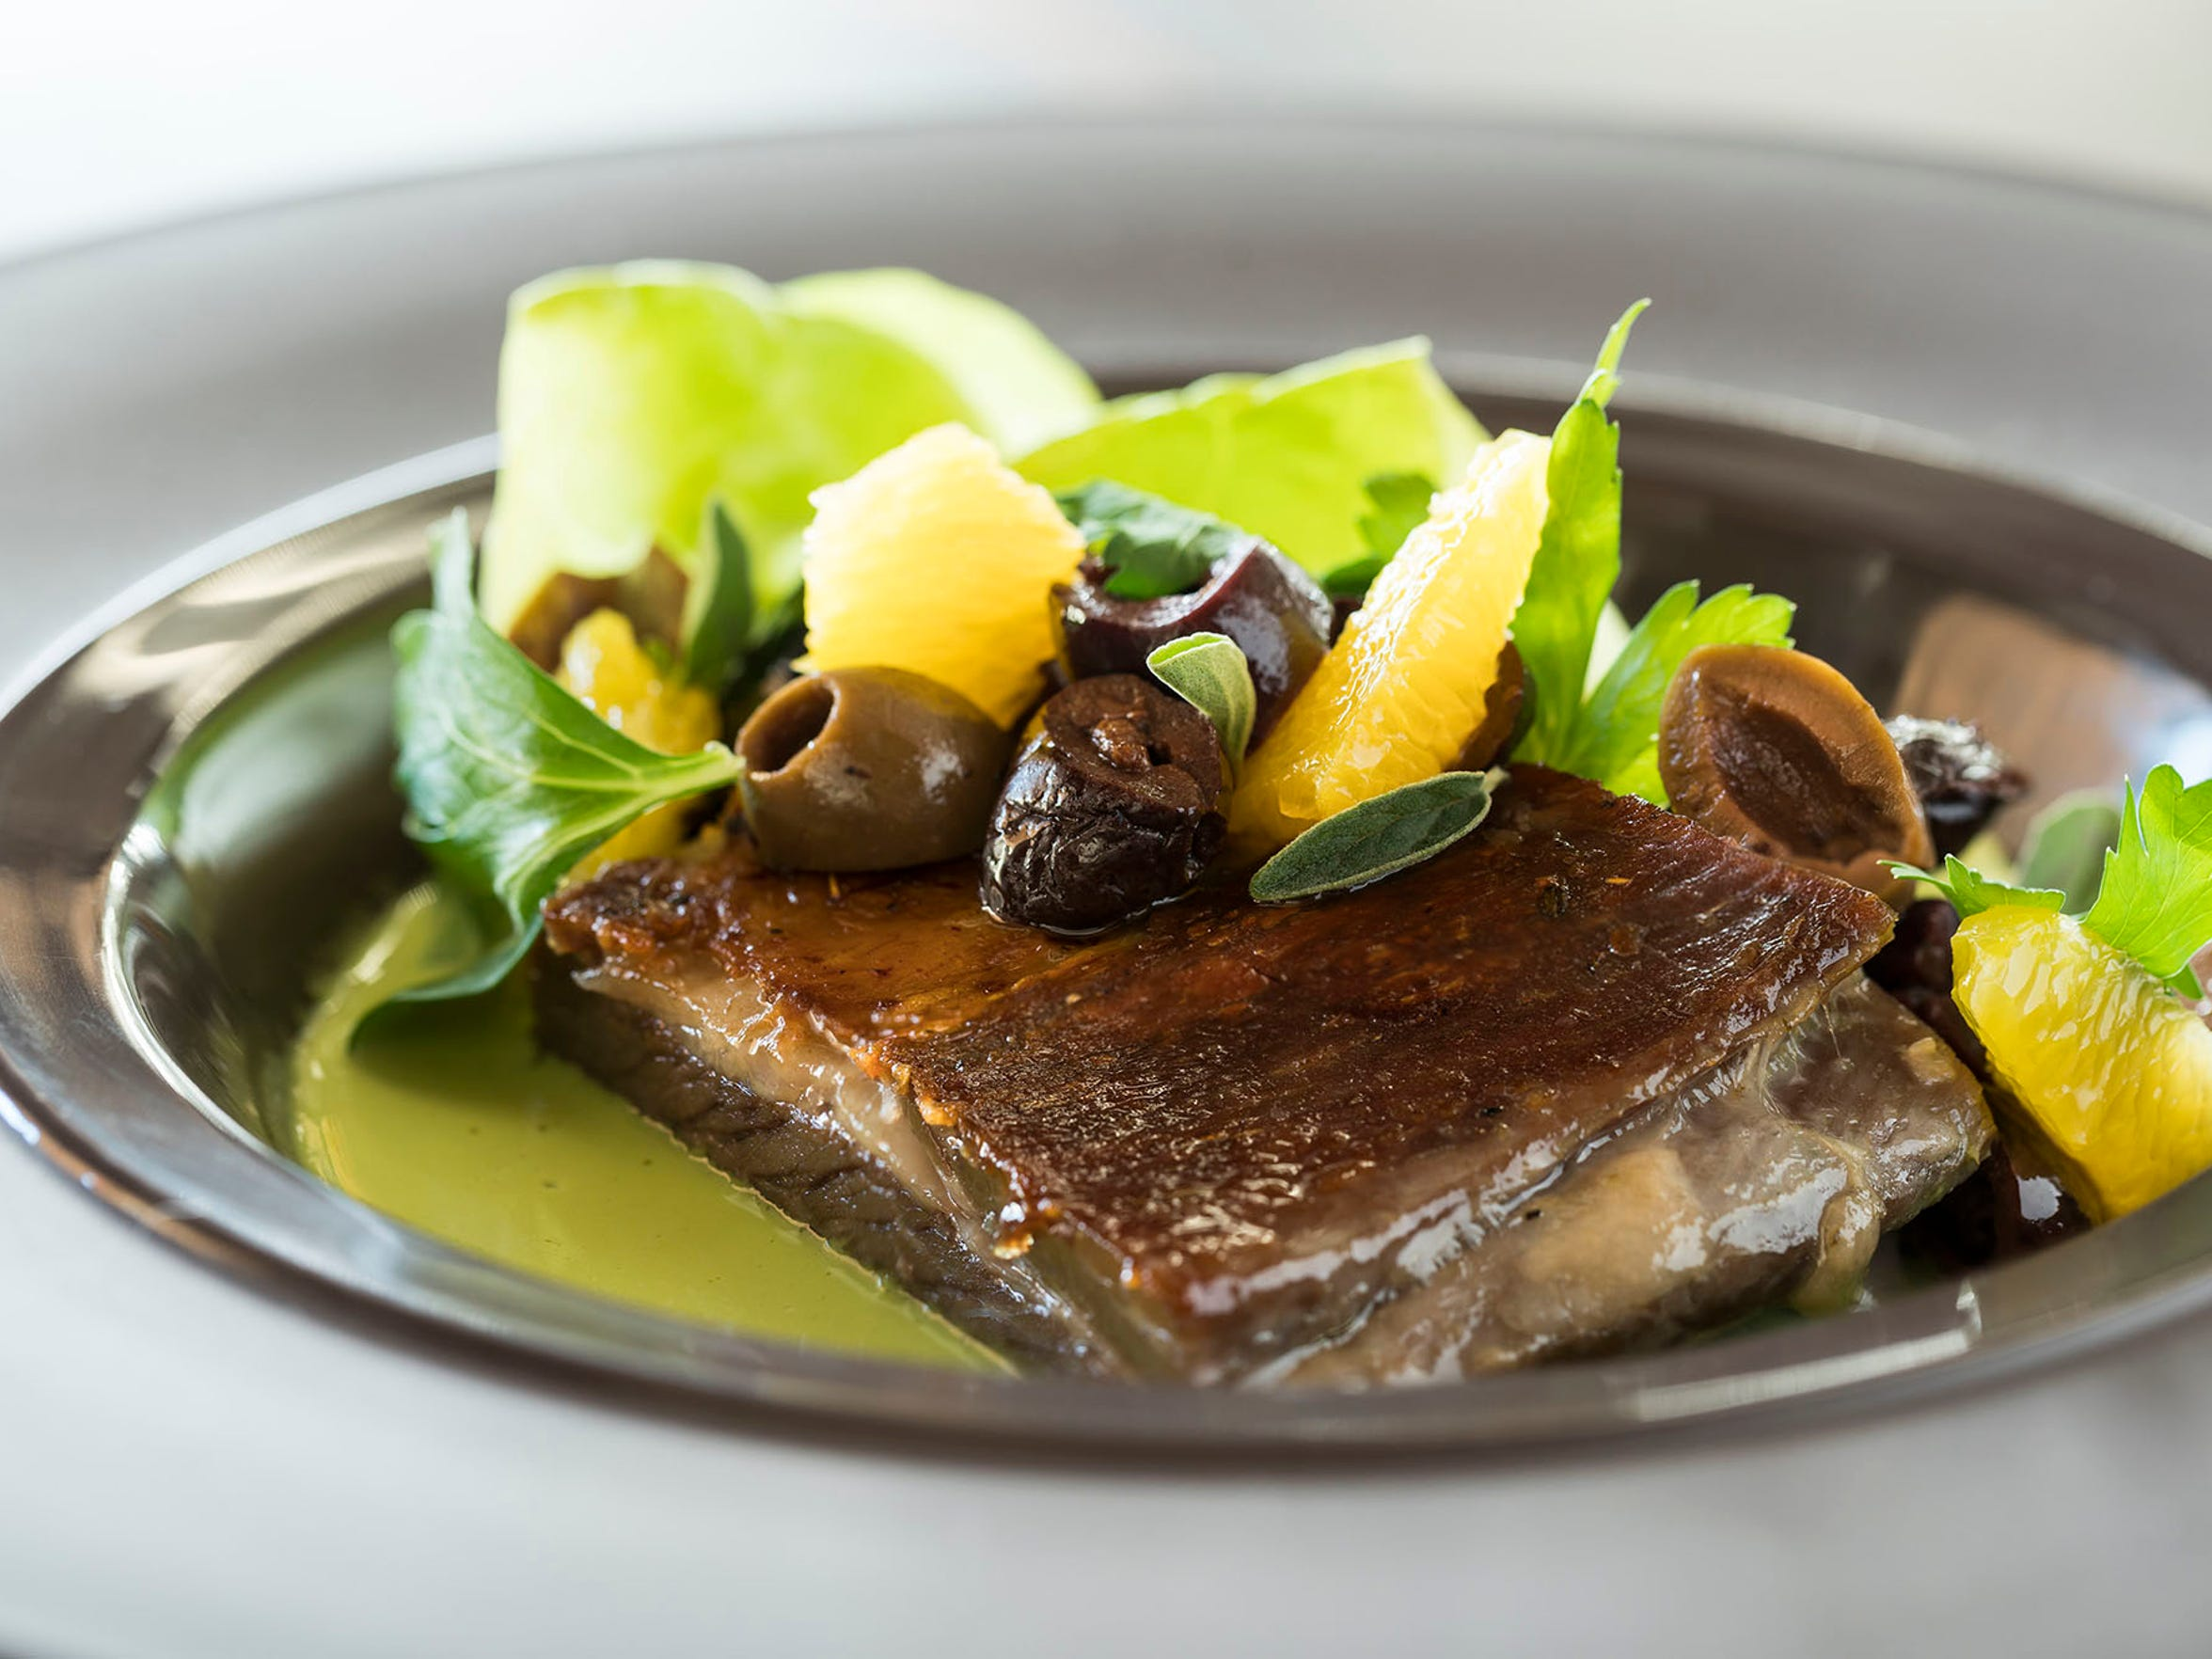 Braised lamb belly with citrus-olive salad at Weft